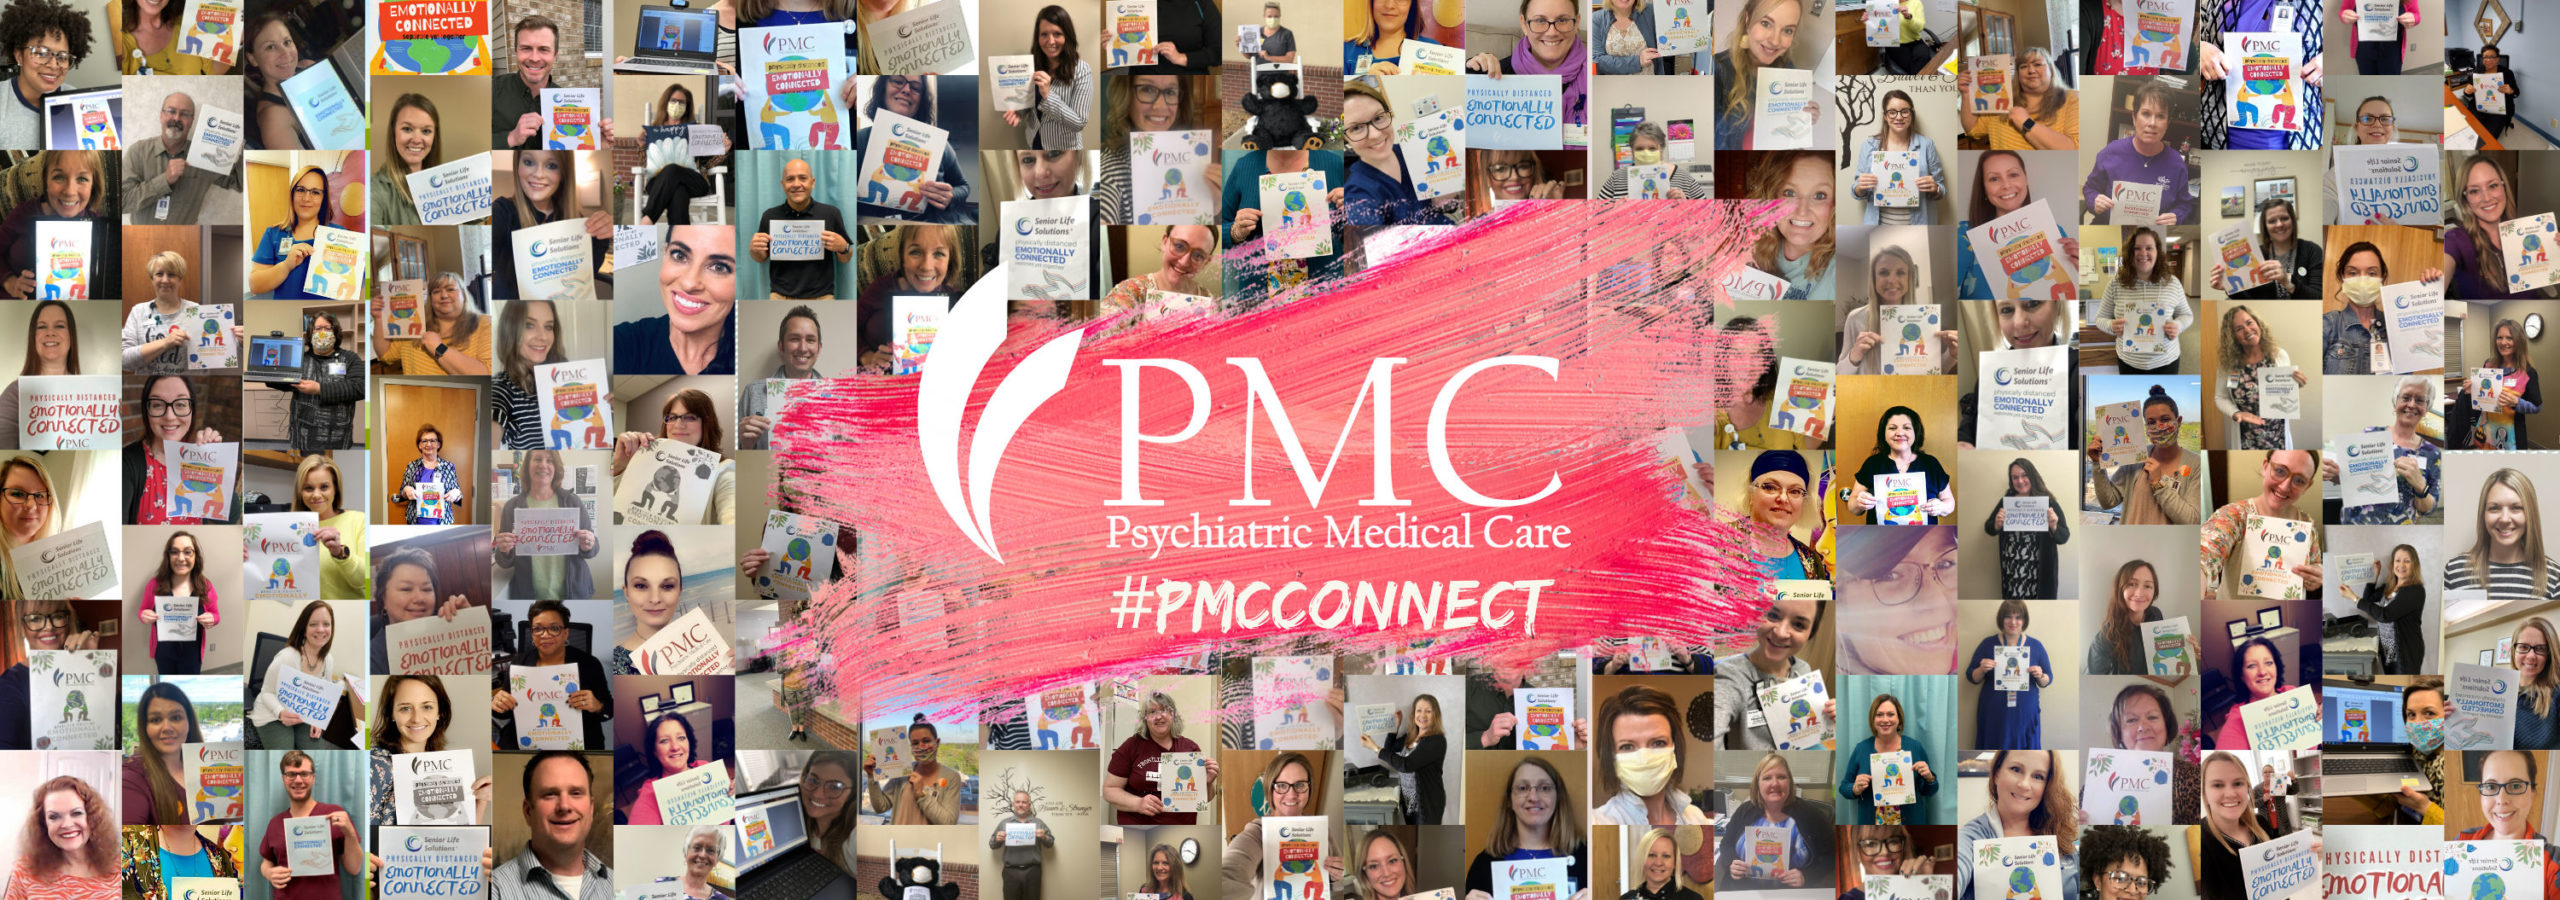 #PMCconnect